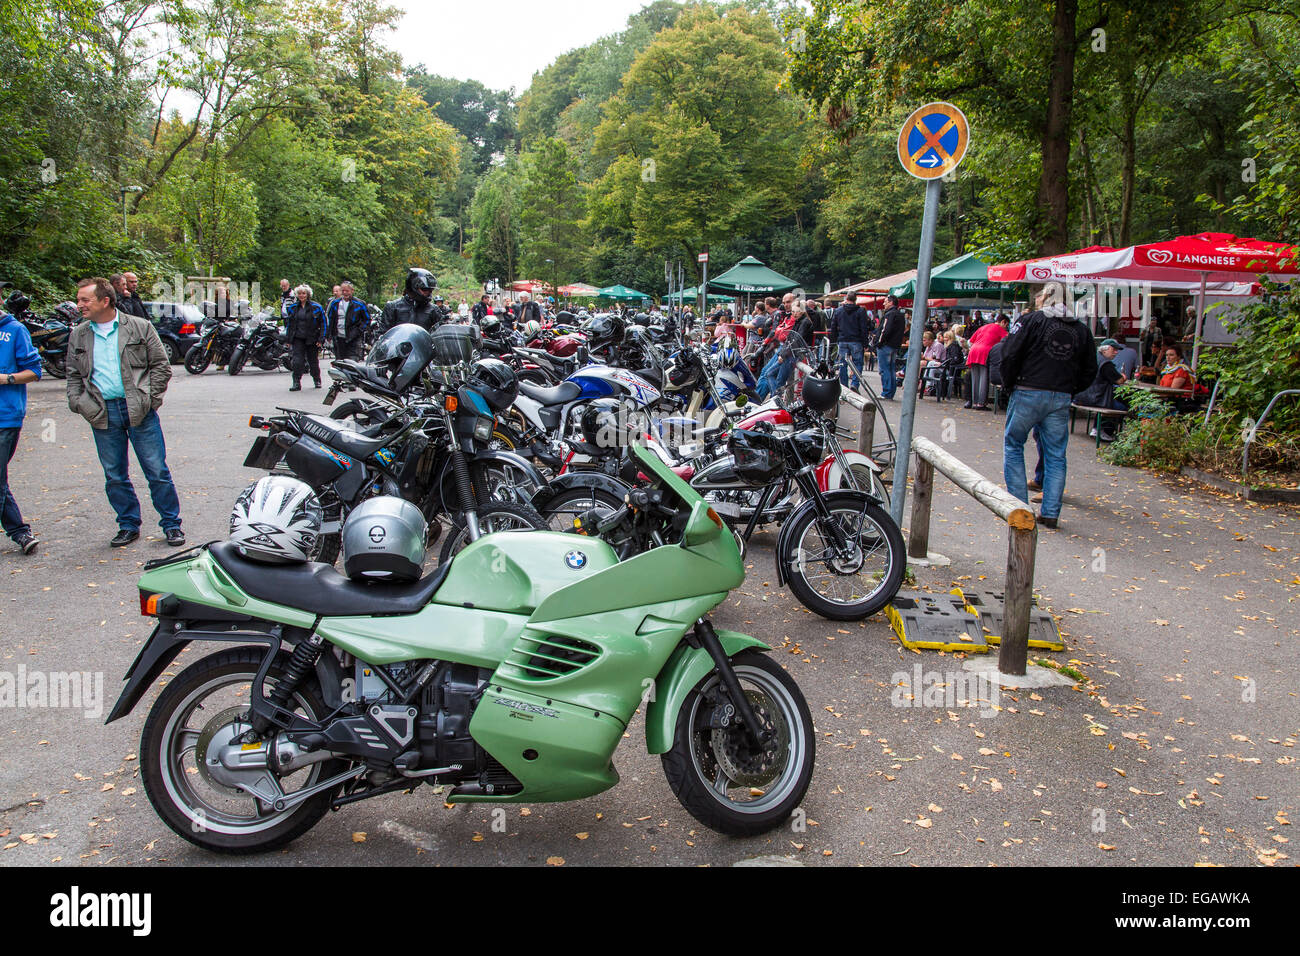 Motorbike hot spot, meeting place for bikers, at river Ruhr, 'Haus Scheppen', Essen, Germany - Stock Image